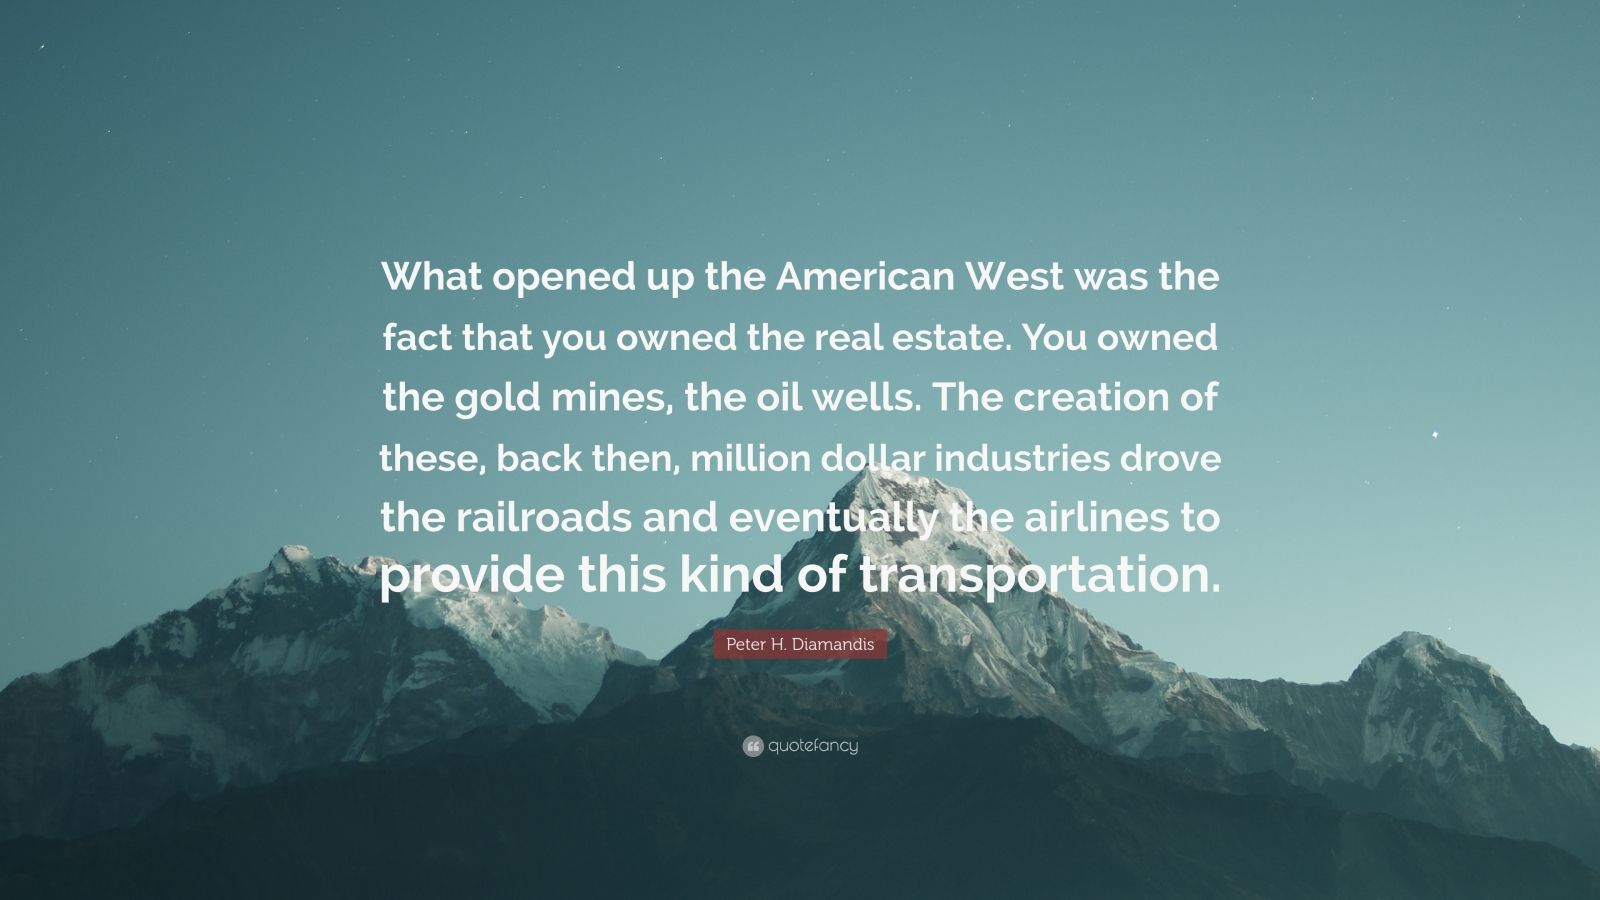 "Peter H. Diamandis Quote: ""What opened up the American West was the fact that you owned the real estate. You owned the gold mines, the oil wells. The creation of these, back then, million dollar industries drove the railroads and eventually the airlines to provide this kind of transportation."""